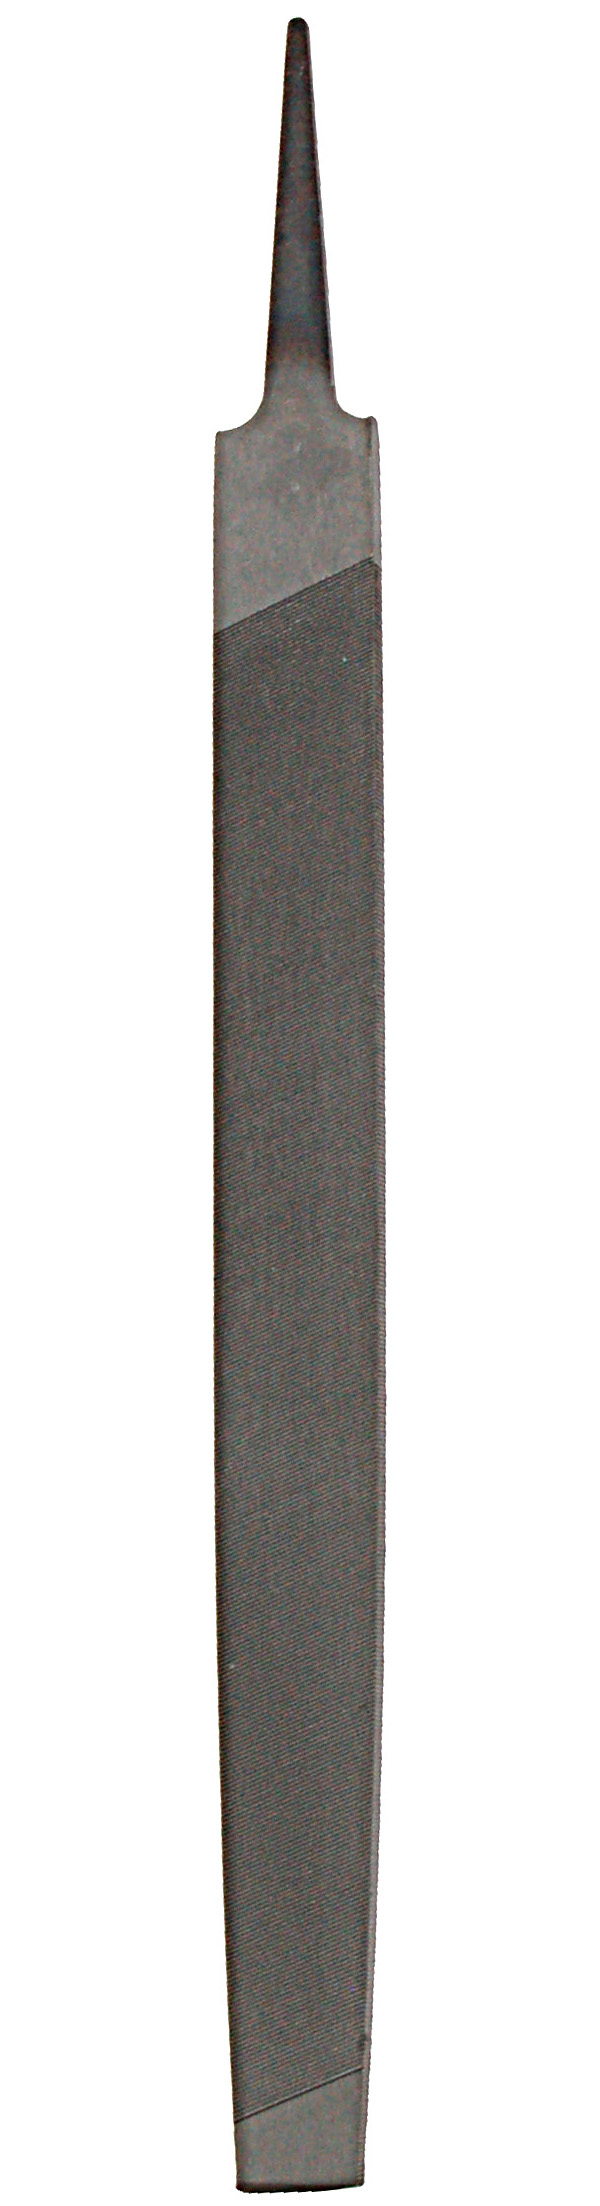 Zenport Sharpening File AGF250 Mill Bastard File, 10-Inch (250 mm), for sharpening pruners and knives